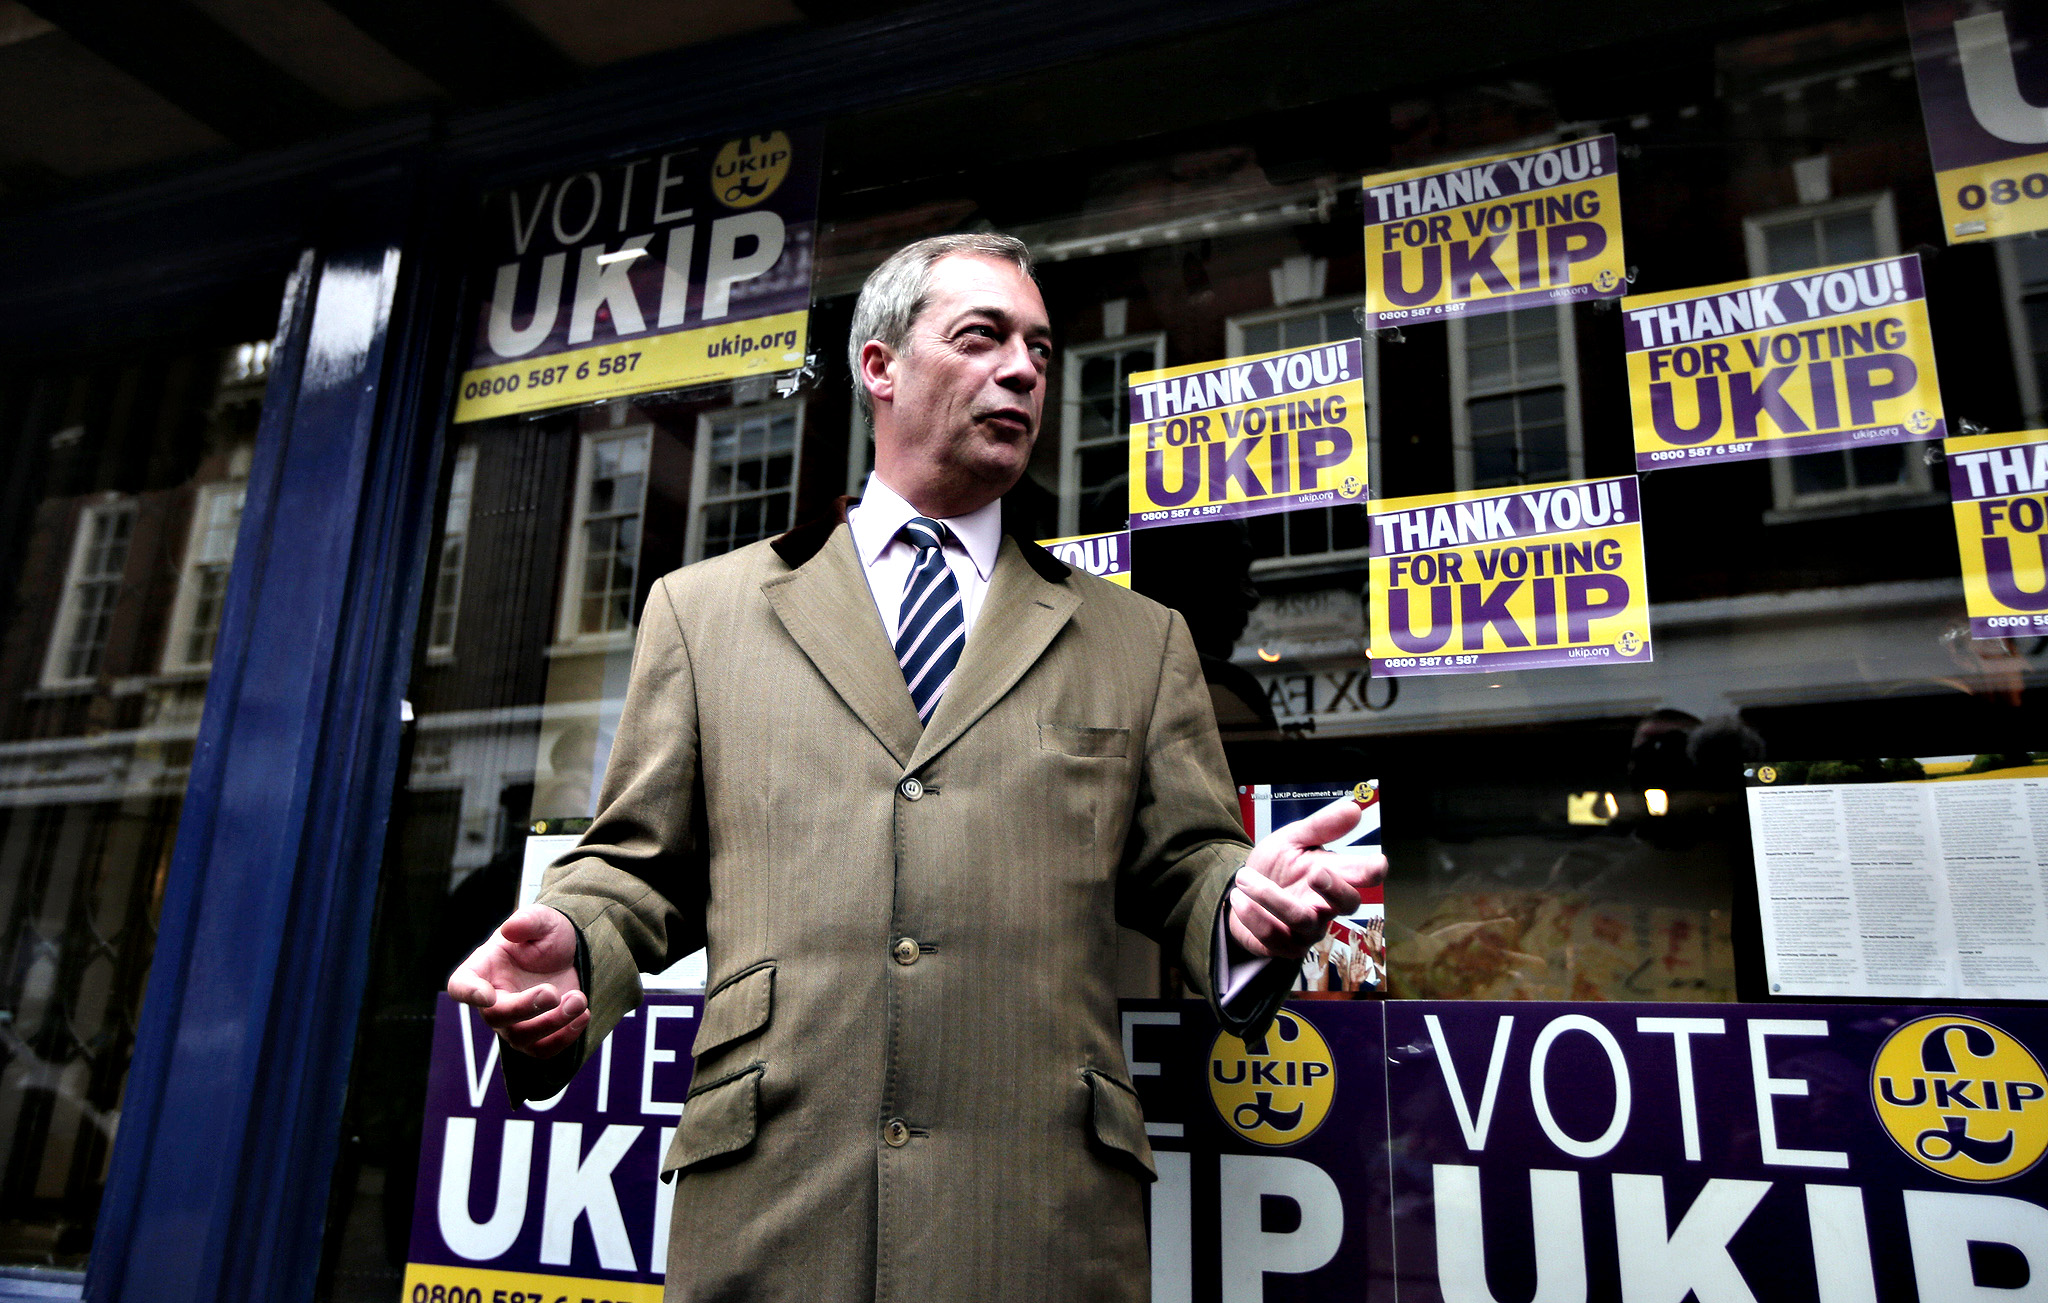 Nigel Farage, the leader of the U.K. Independence Party (UKIP) poses for photographers in front of the party's offices in Rochester, England, Friday, Nov. 21, 2014, a day after a special election. UKIP, Britain's anti-immigration party, UKIP, has easily won its second seat in parliament as Mark Reckless,  a former Conservative lawmaker ran well ahead of his old party. Reckless, the second Conservative to leave the party and win a seat for UKIP, won 42 percent of the vote in a special election in the Rochester & Strood constituency in southeast England.